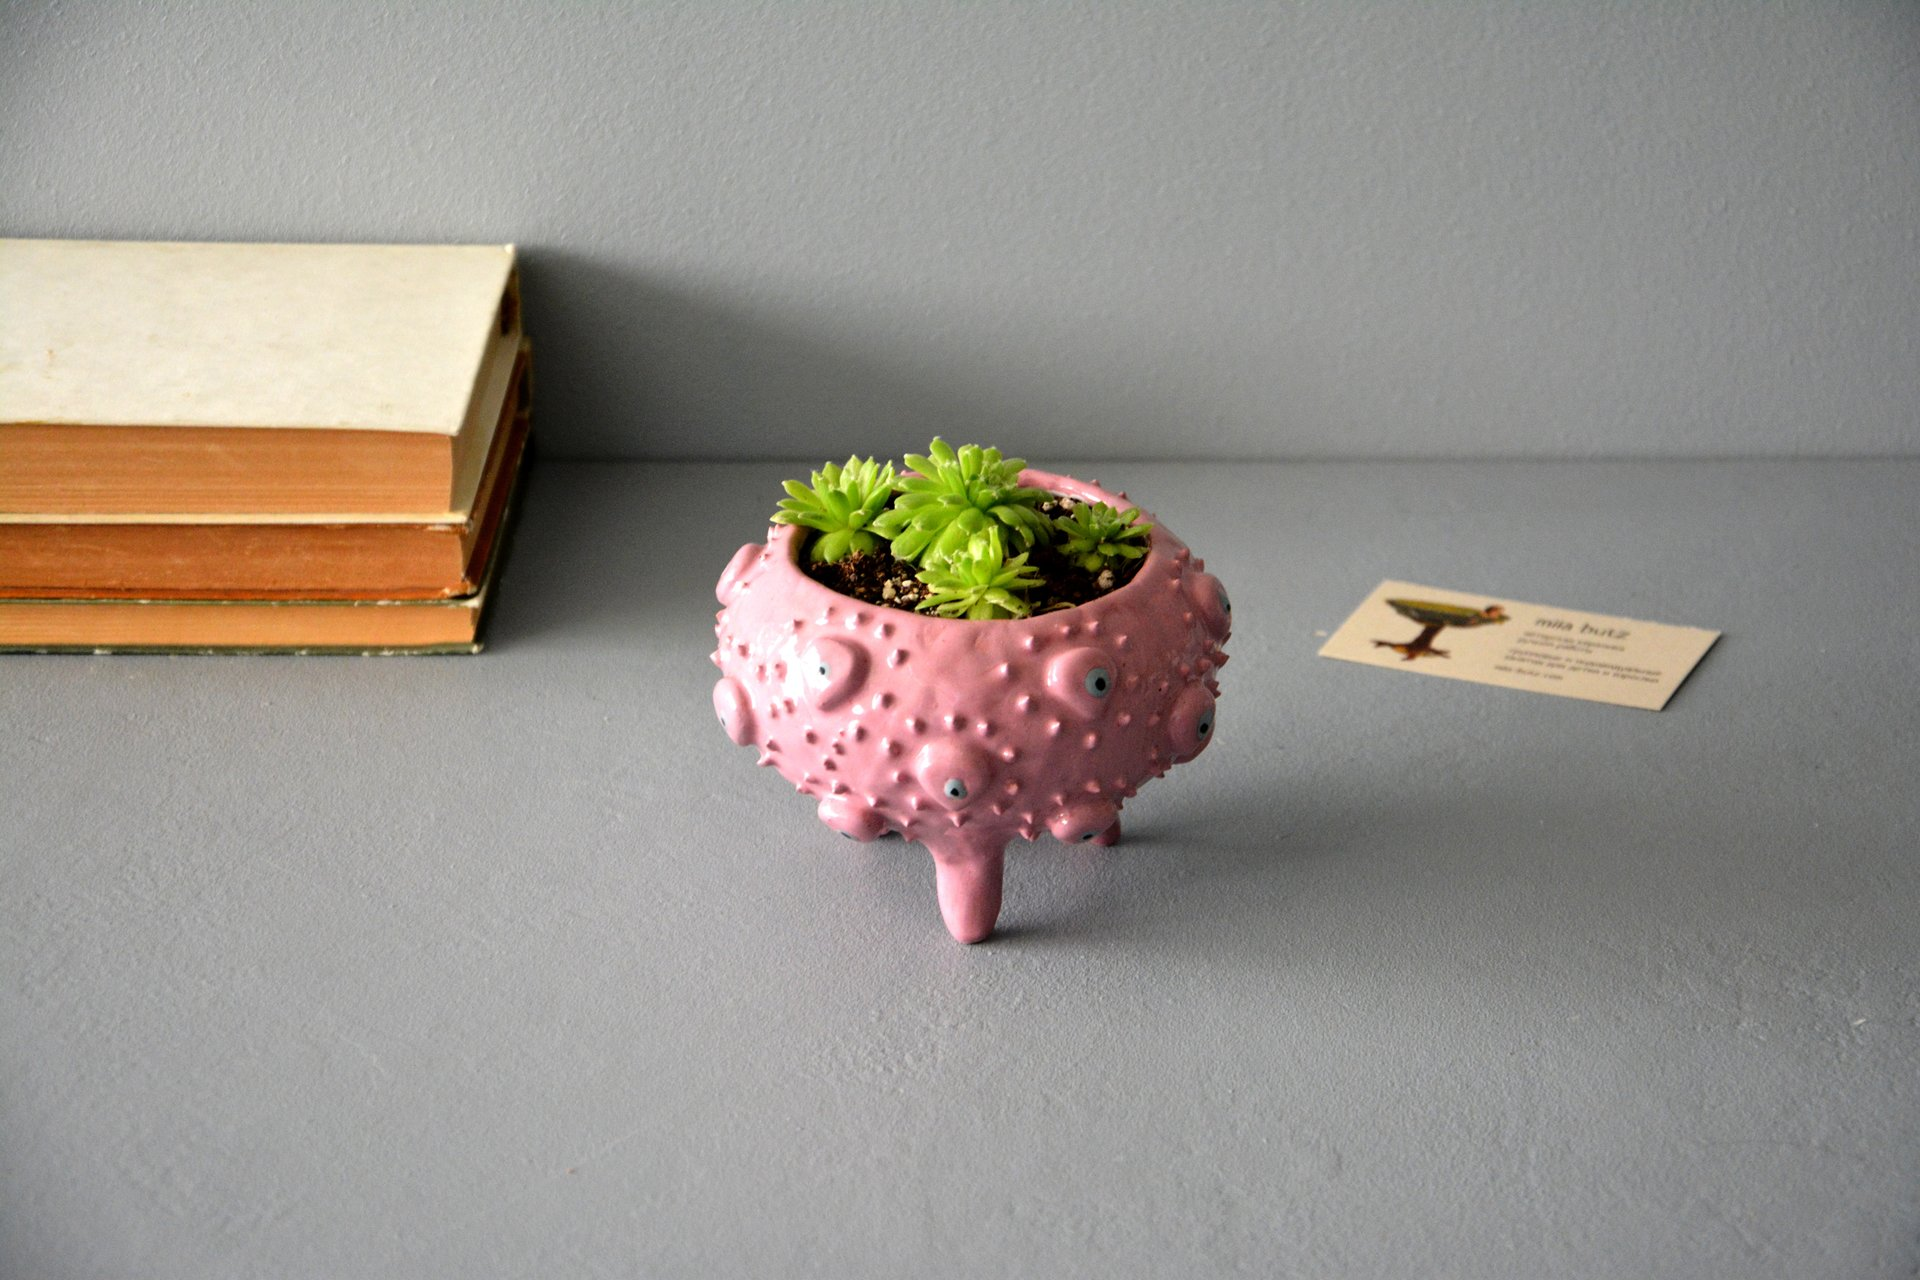 Pink ceramic flower pots for succulents, height - 8,5 cm, diameter (internal) - 8 cm, photo 4 of 4.